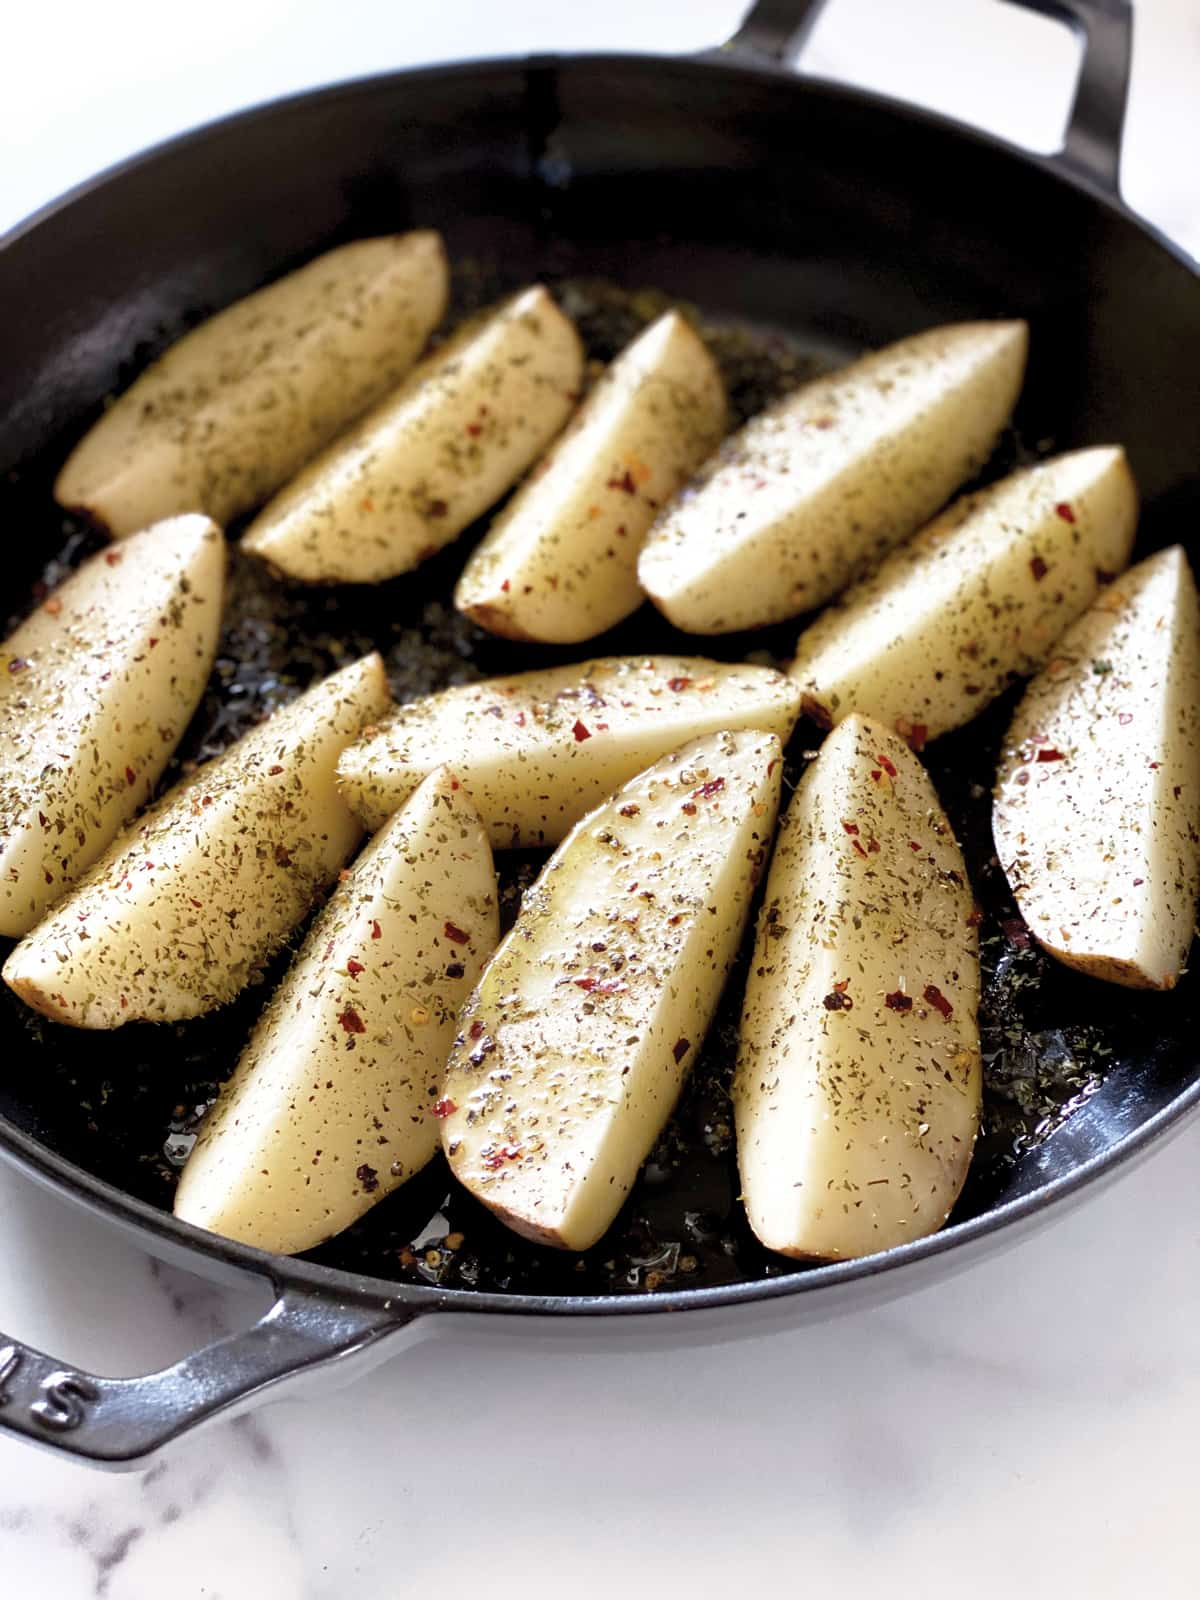 Raw potatoes cut in wedges in a black baking pan seasoned with oregano and pepper and olive oil.